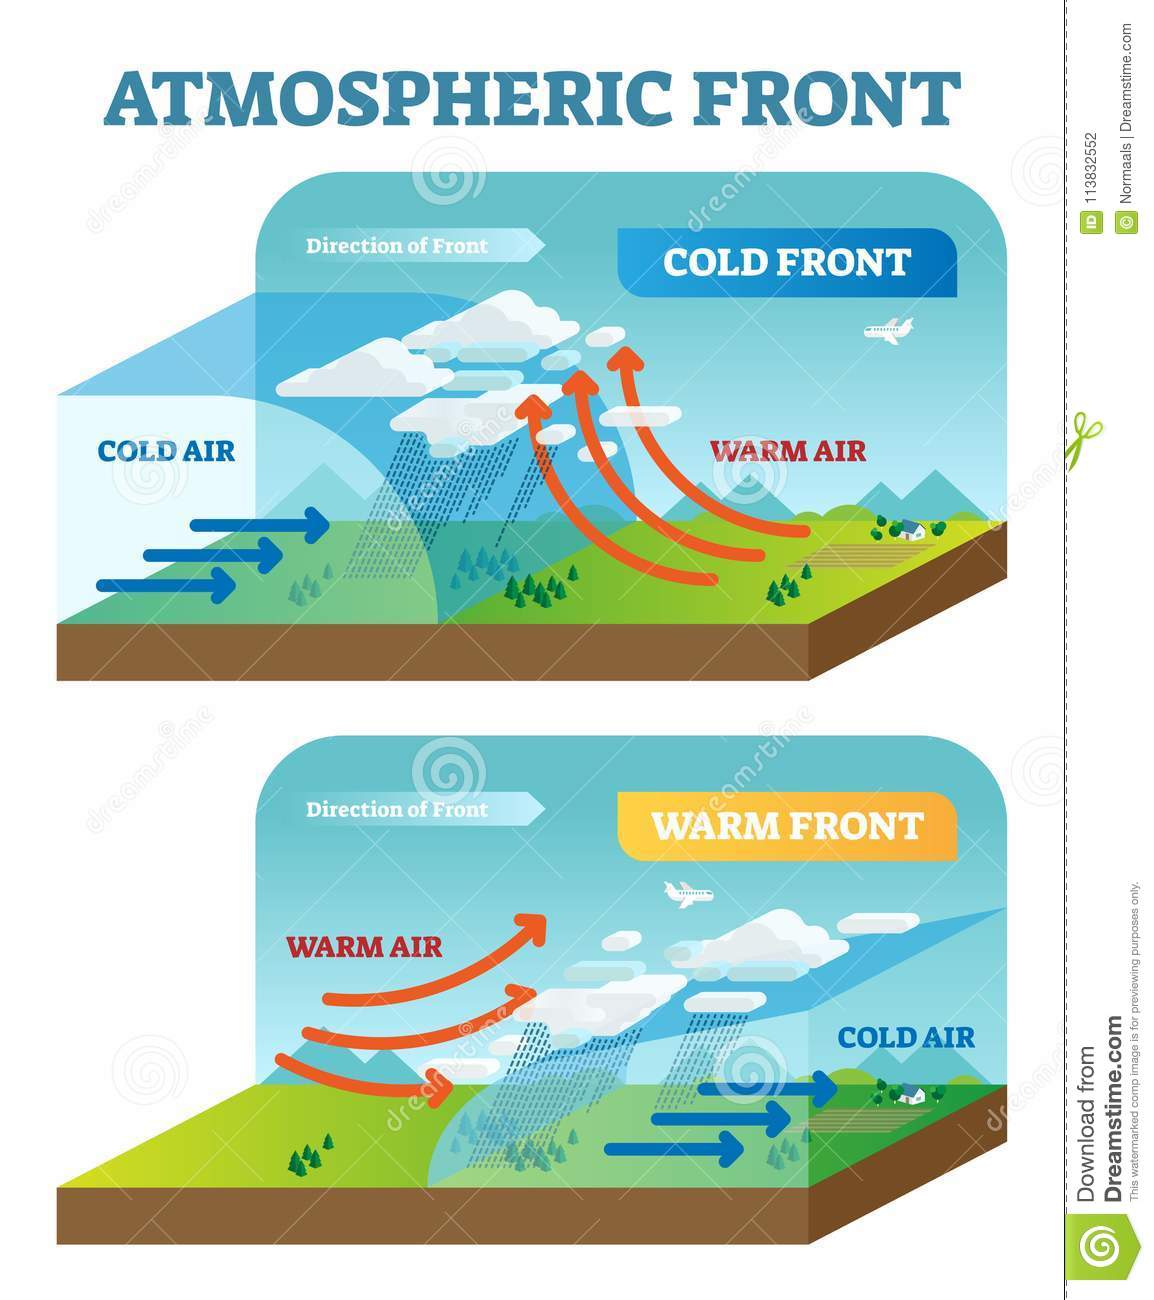 Atmospheric Front Vector Illustration Diagram With Cold